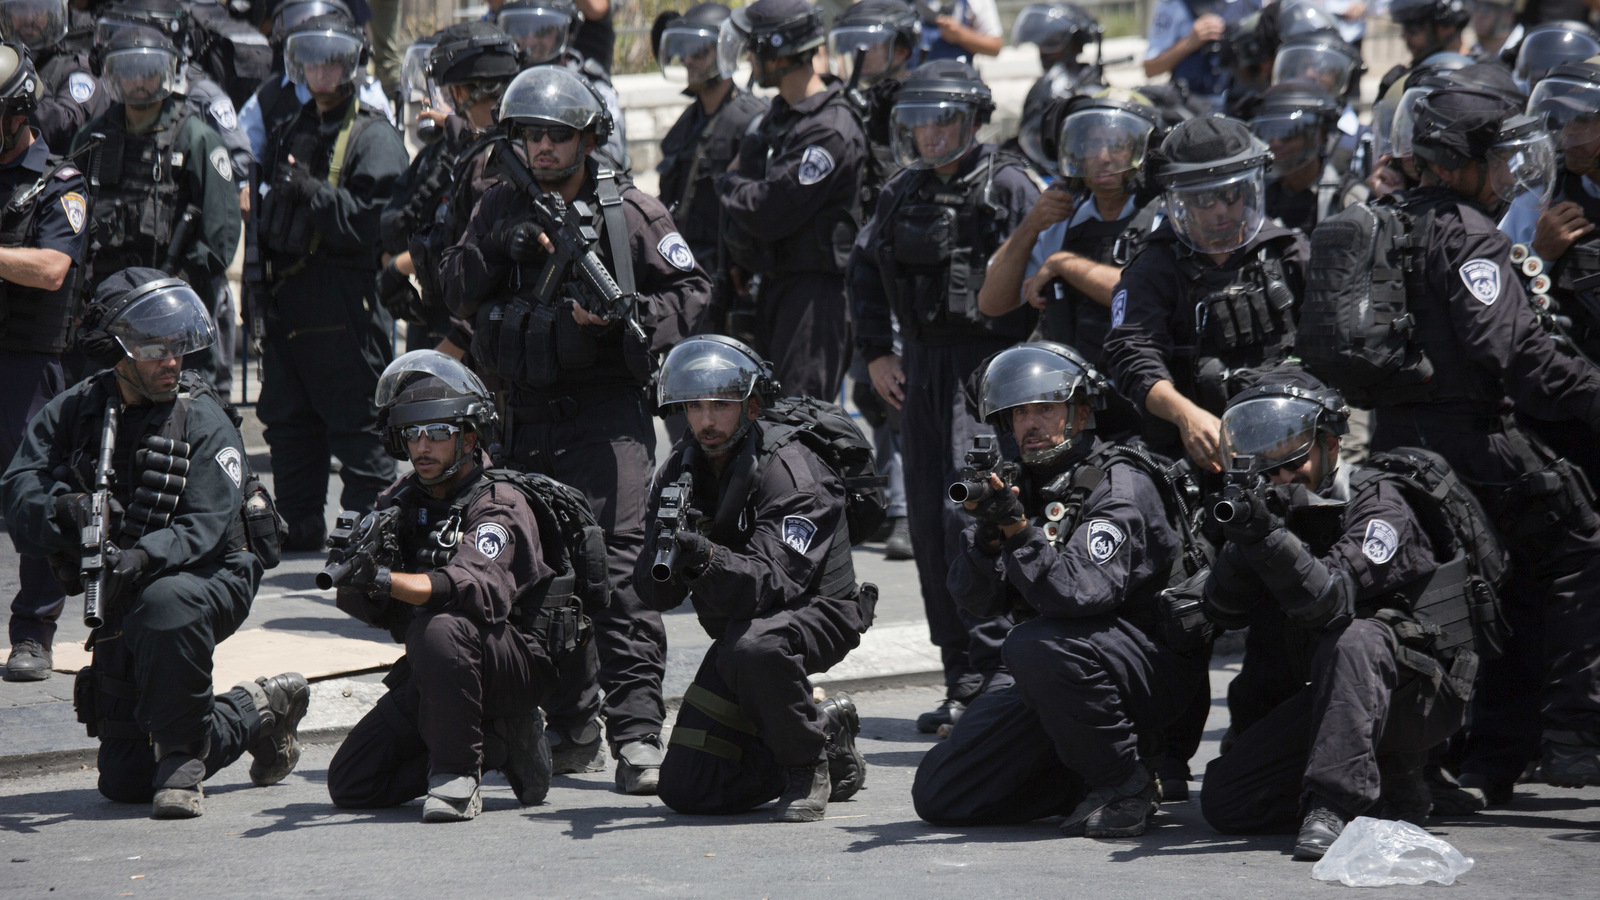 Israeli riot police aim their rifles at protesters outside of Jerusalem's Old City, July 28, 2017. (AP/Ariel Schalit)